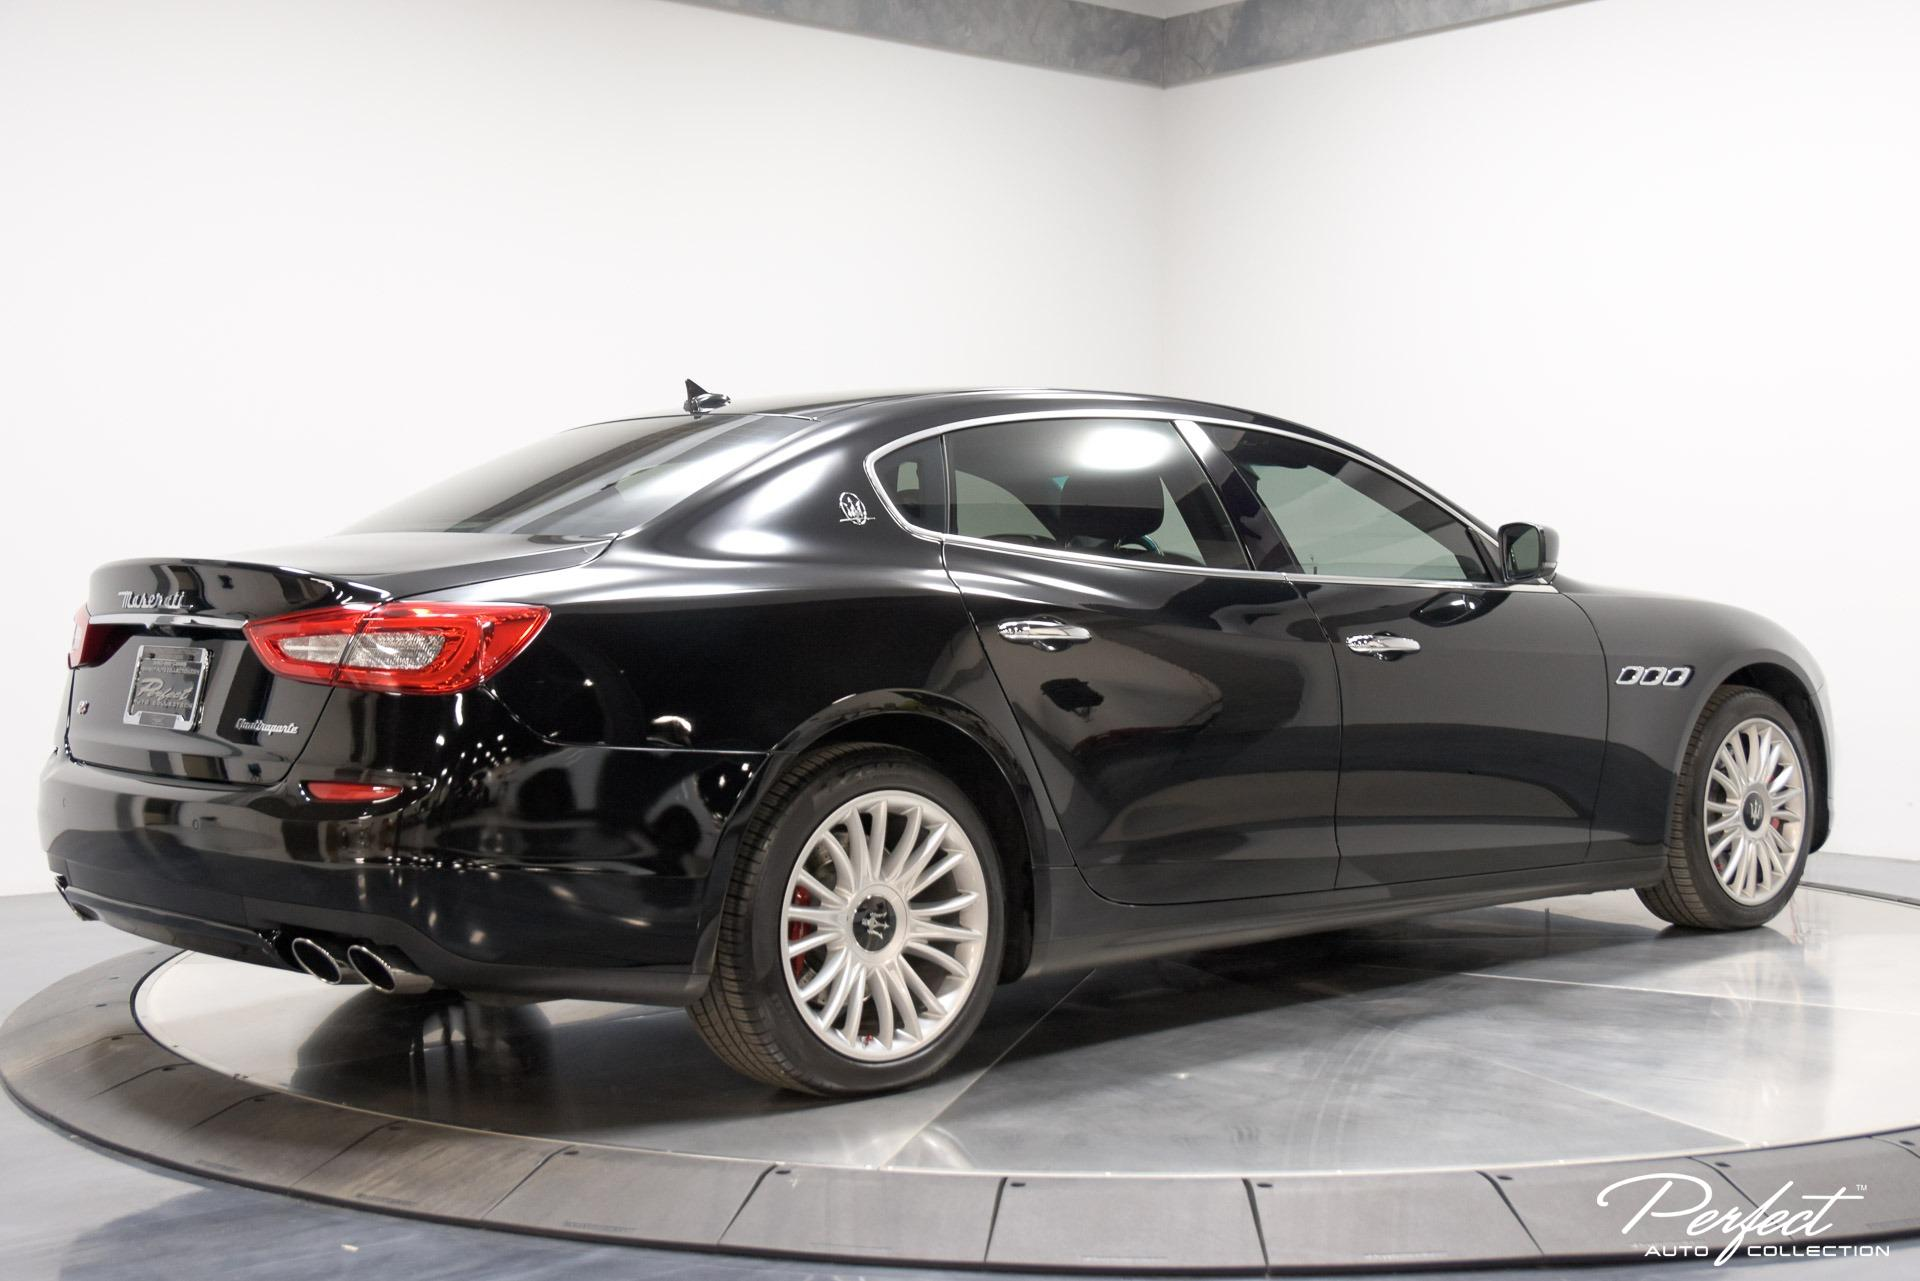 Used 2014 Maserati Quattroporte S Q4 for sale $31,995 at Perfect Auto Collection in Akron OH 44310 4